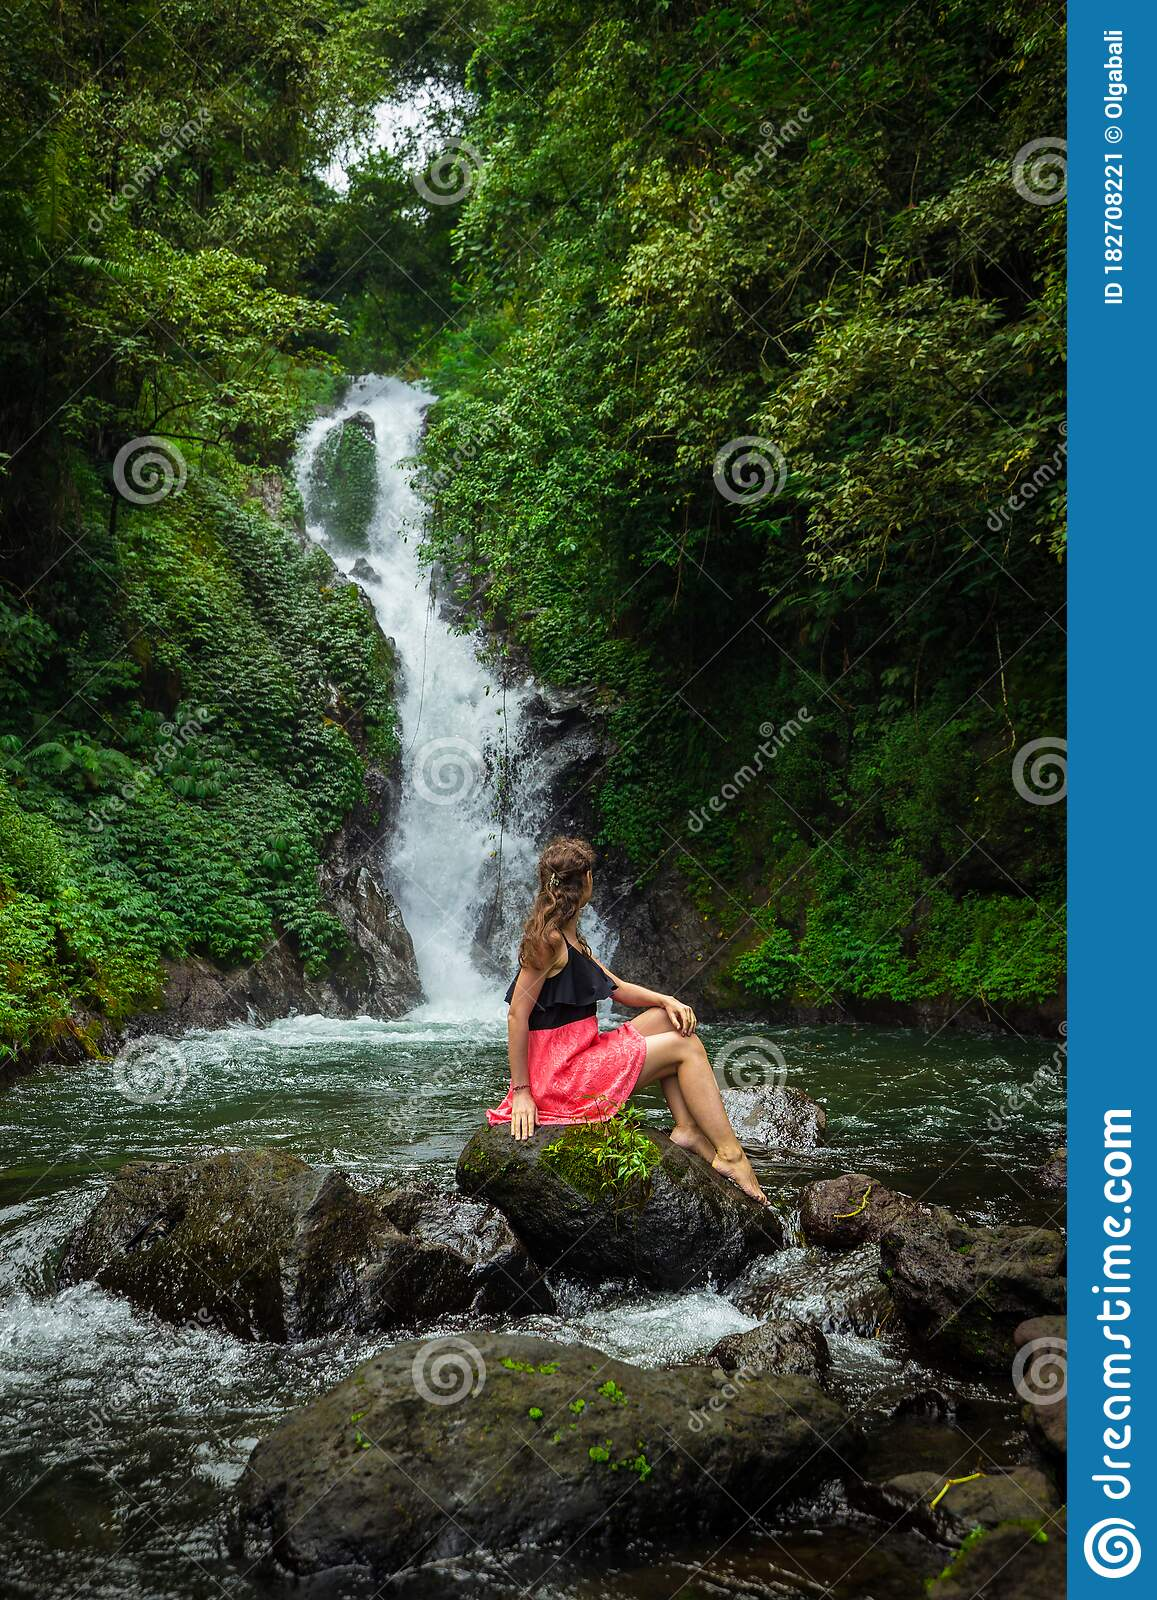 girl-sitting-in-the-landscape-besides-a-waterfall image